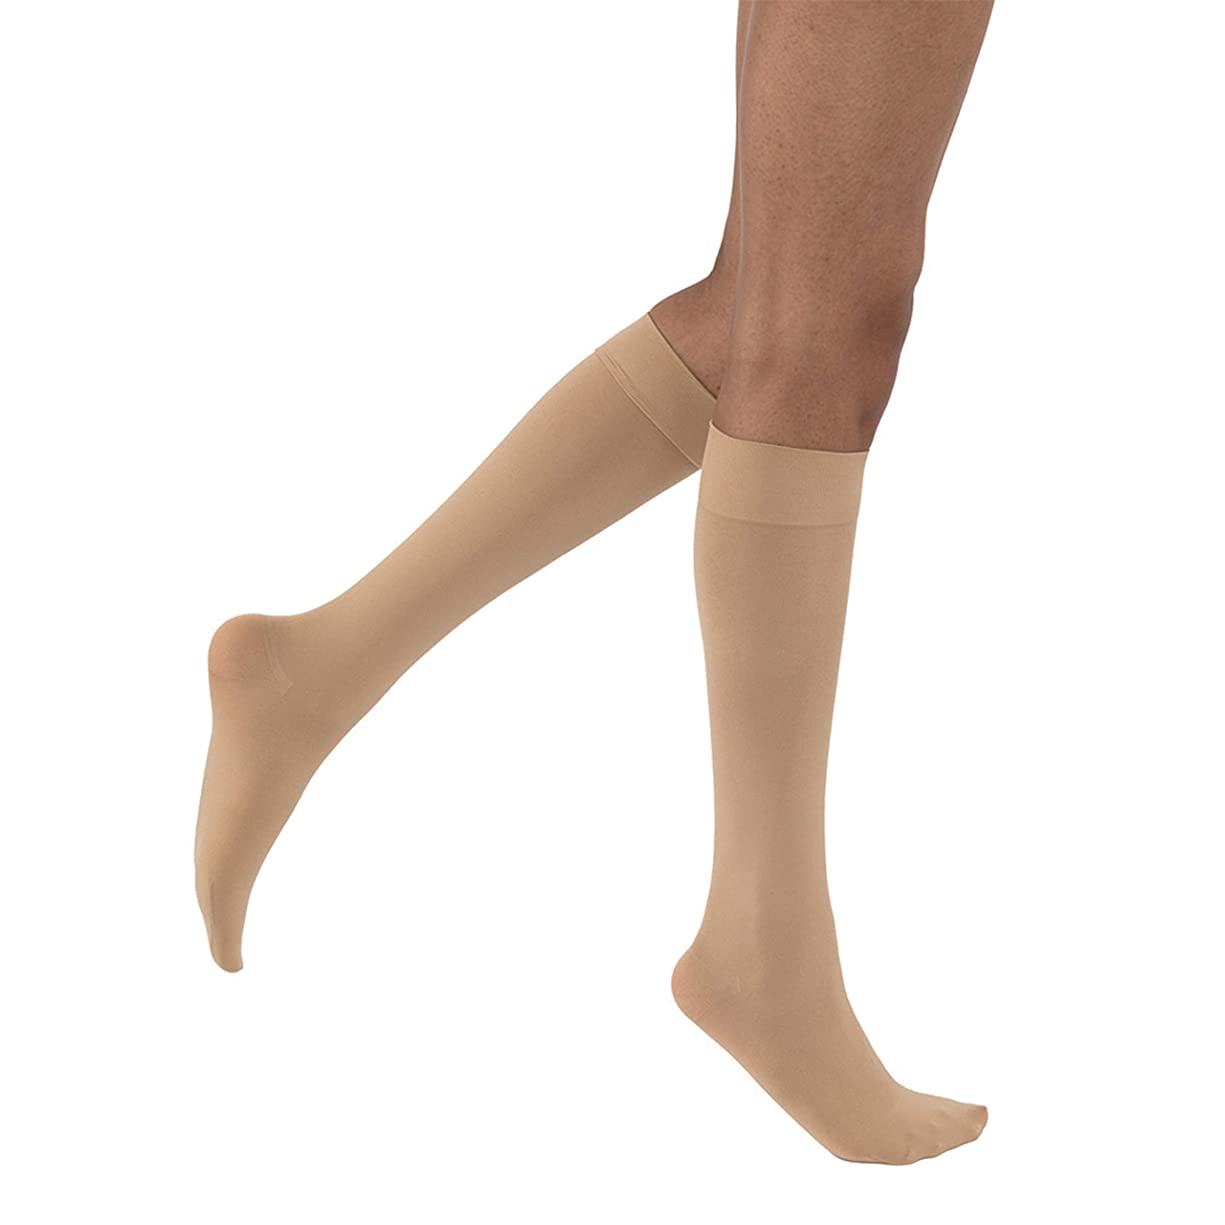 薬剤師パイント近代化するWomen's Opaque 20-30 mmHg Closed Toe Knee High Support Sock Size: Medium, Color: Natural by Jobst